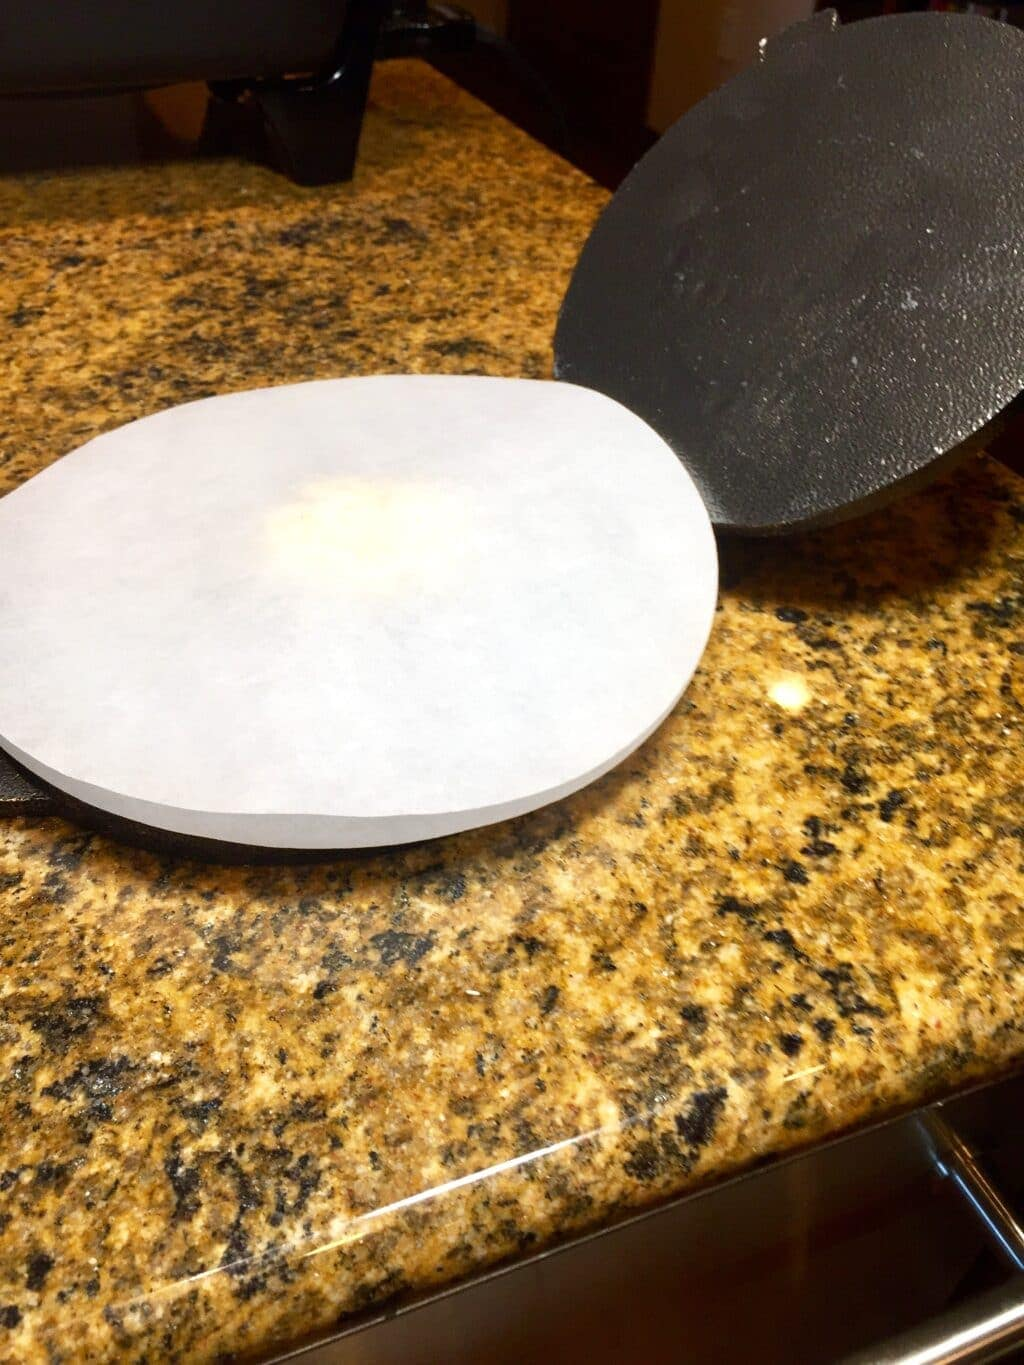 Masa dough between 2 sheets of parchment in a tortilla press